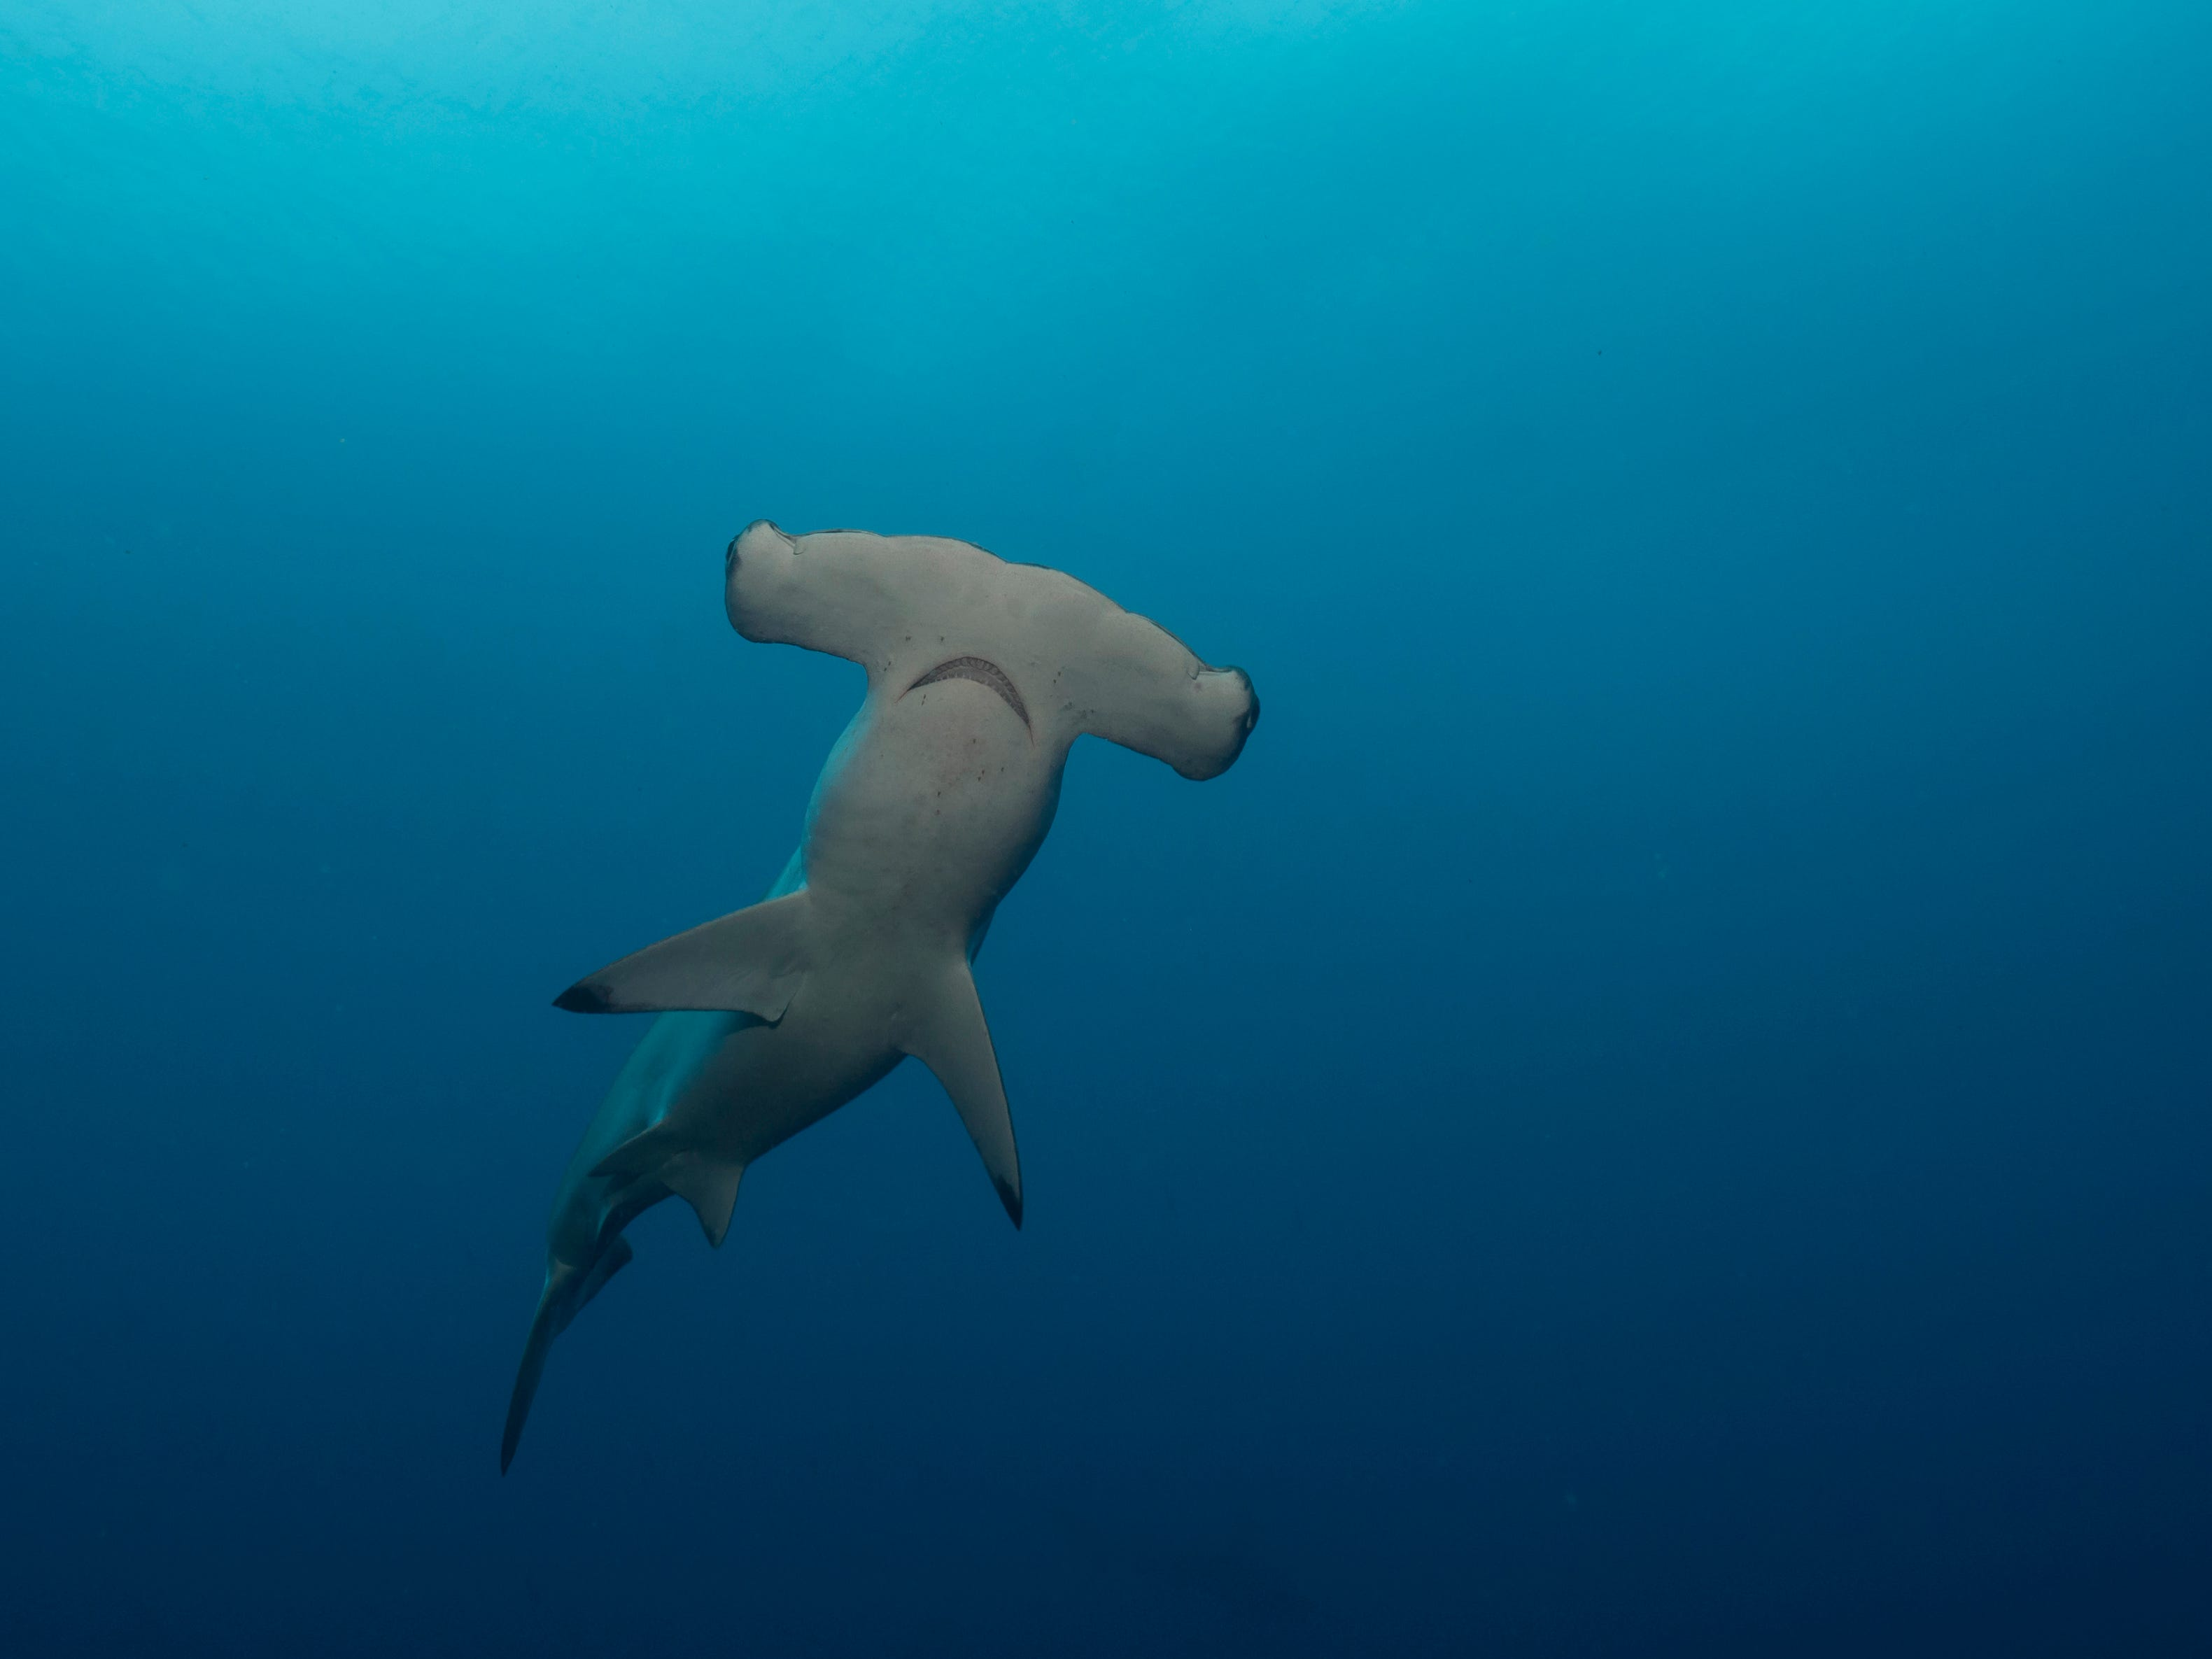 A scalloped hammerhead shark in the Galapagos Islands, Ecuador.